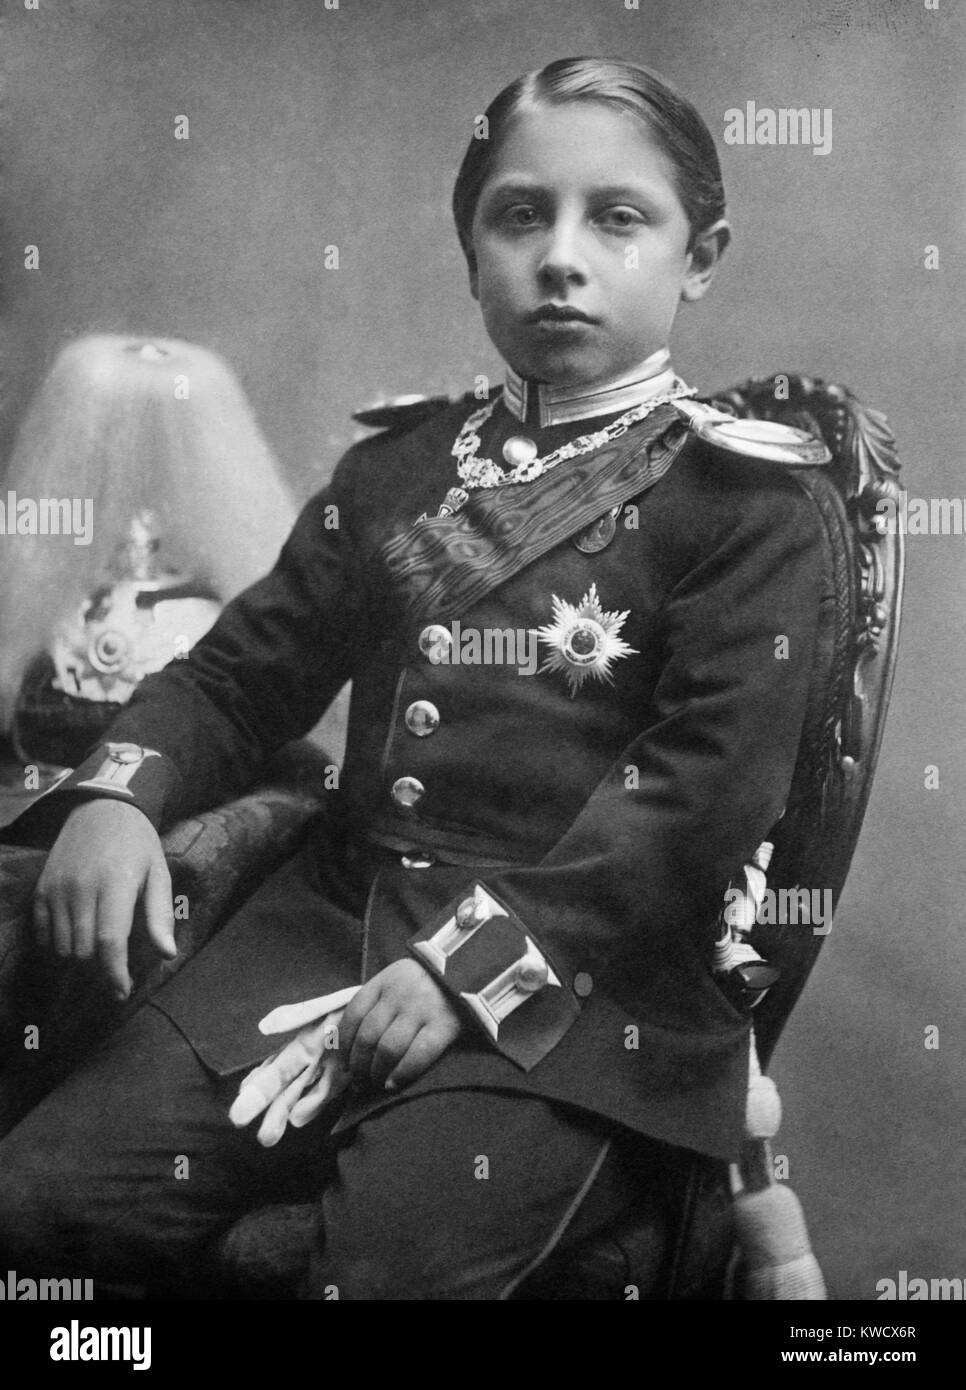 kaiser wilhelm ii as a 12 year old prince 1871 was the first born